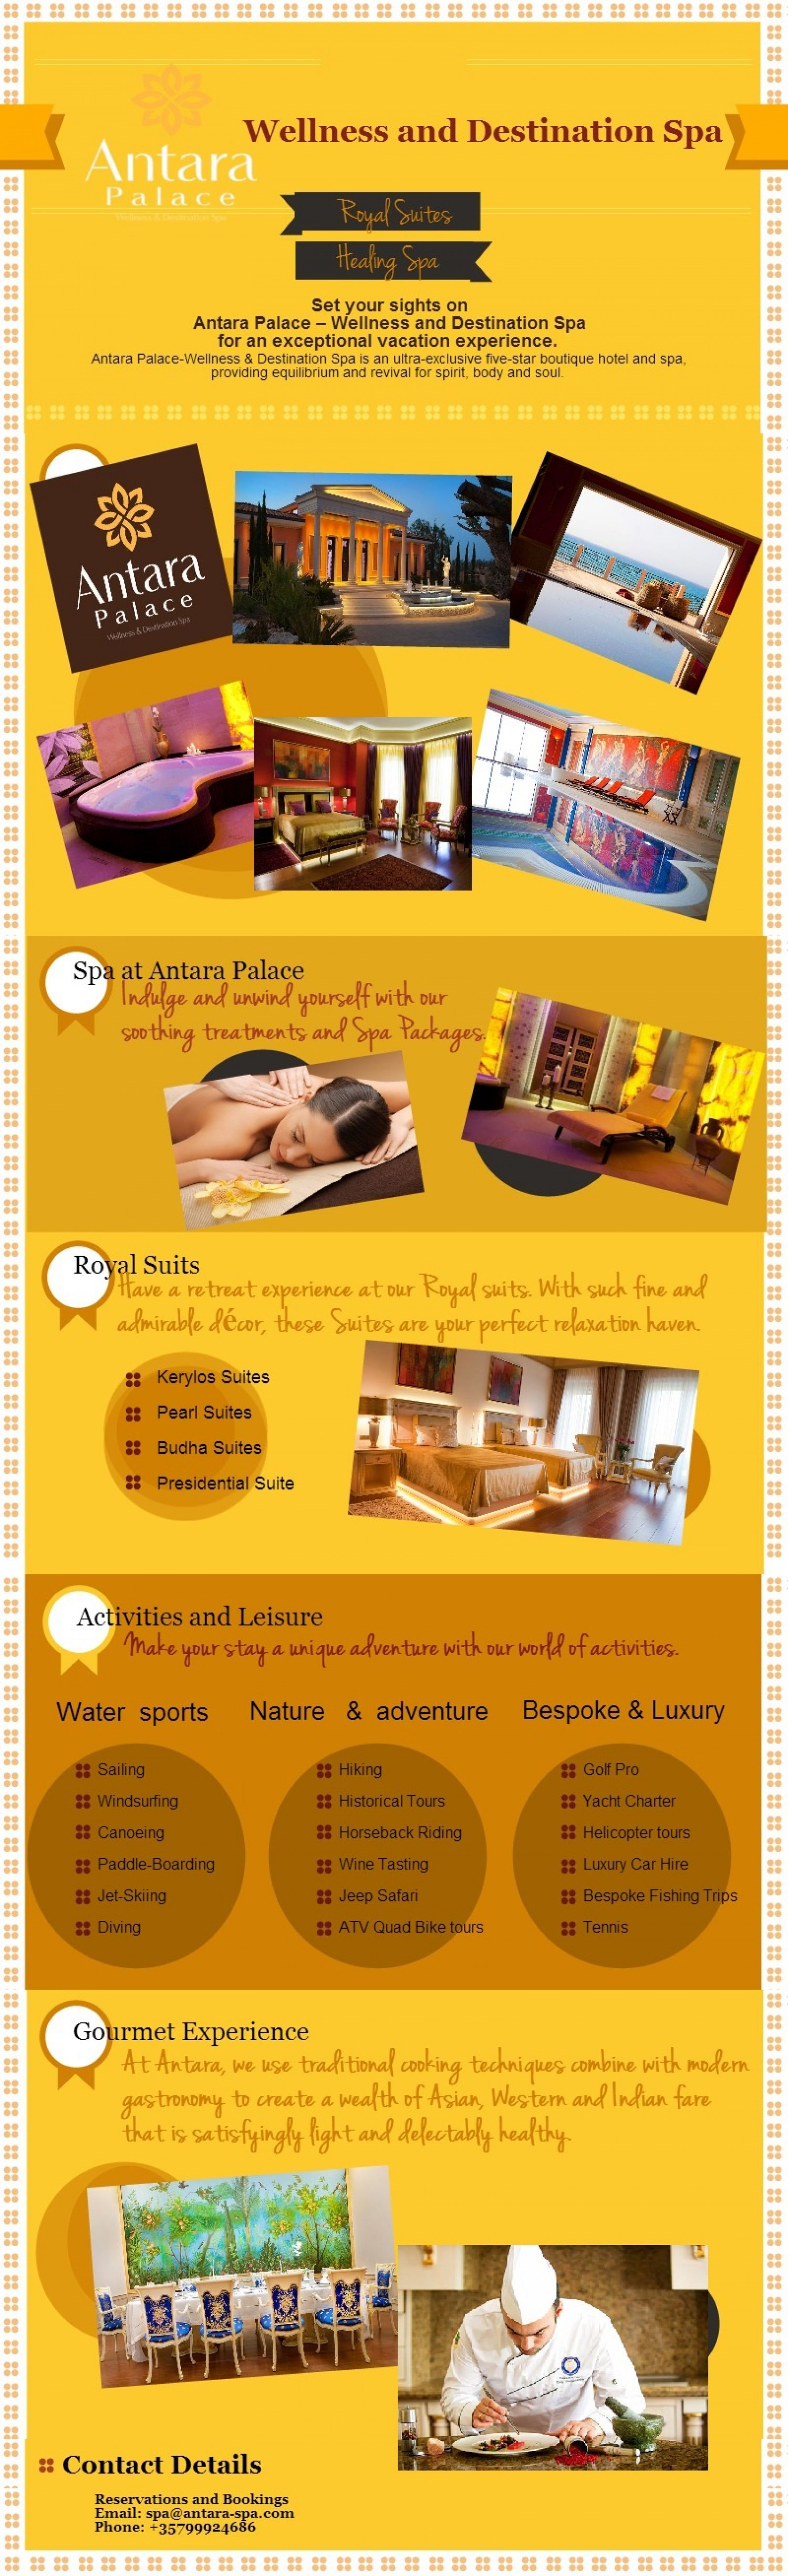 Antara Palace - Wellness and Destination Spa Infographic